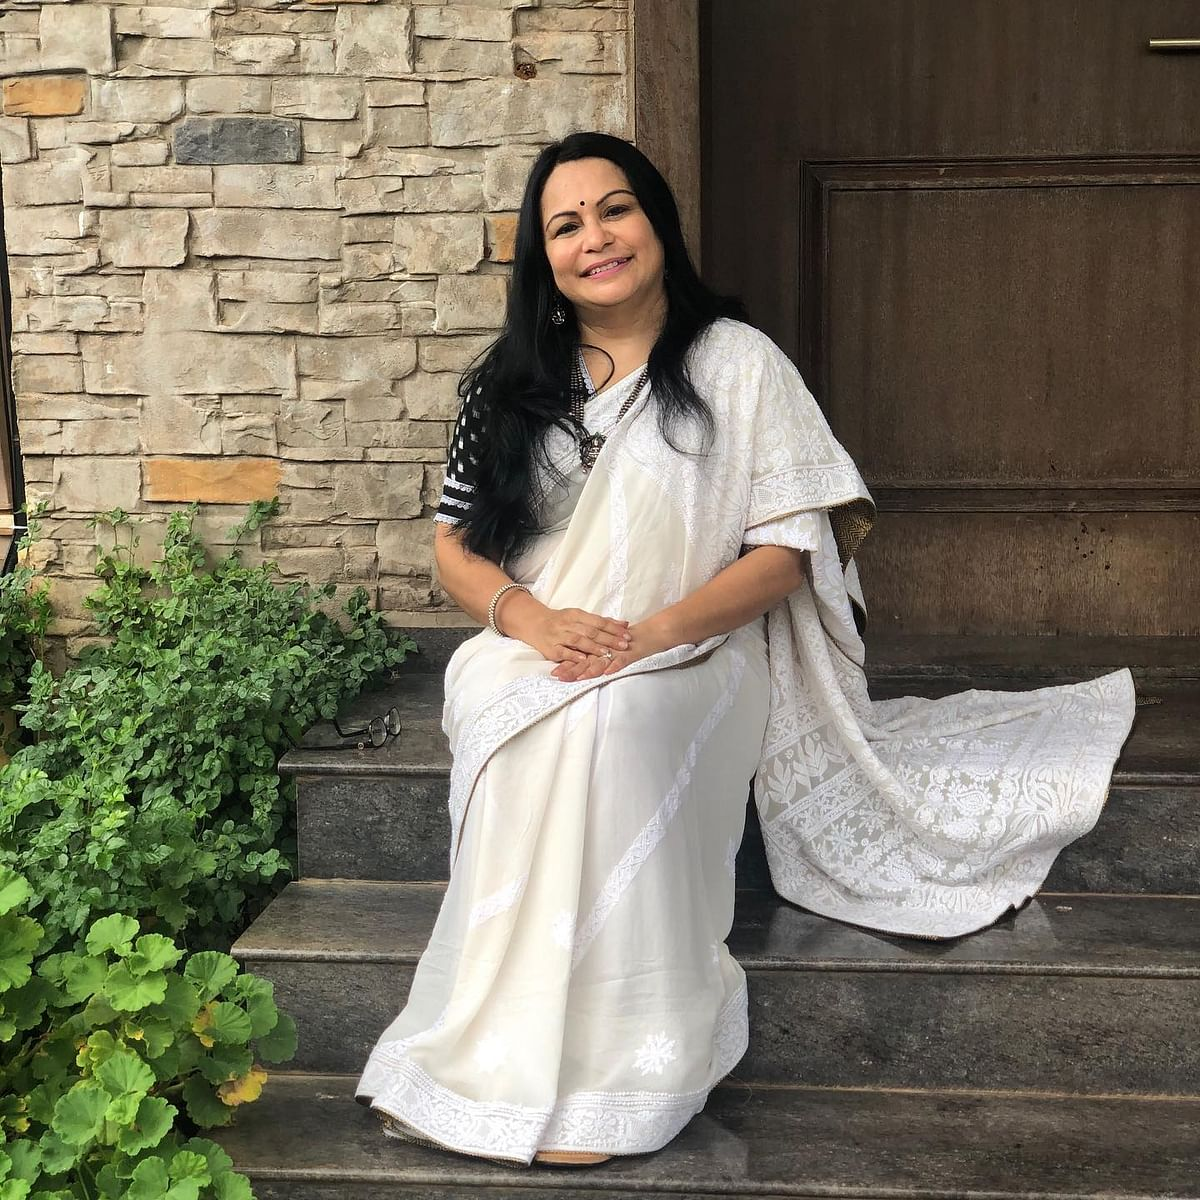 PETA India says they have 'other work' but then puts 28 tweets countering Shefali Vaidya